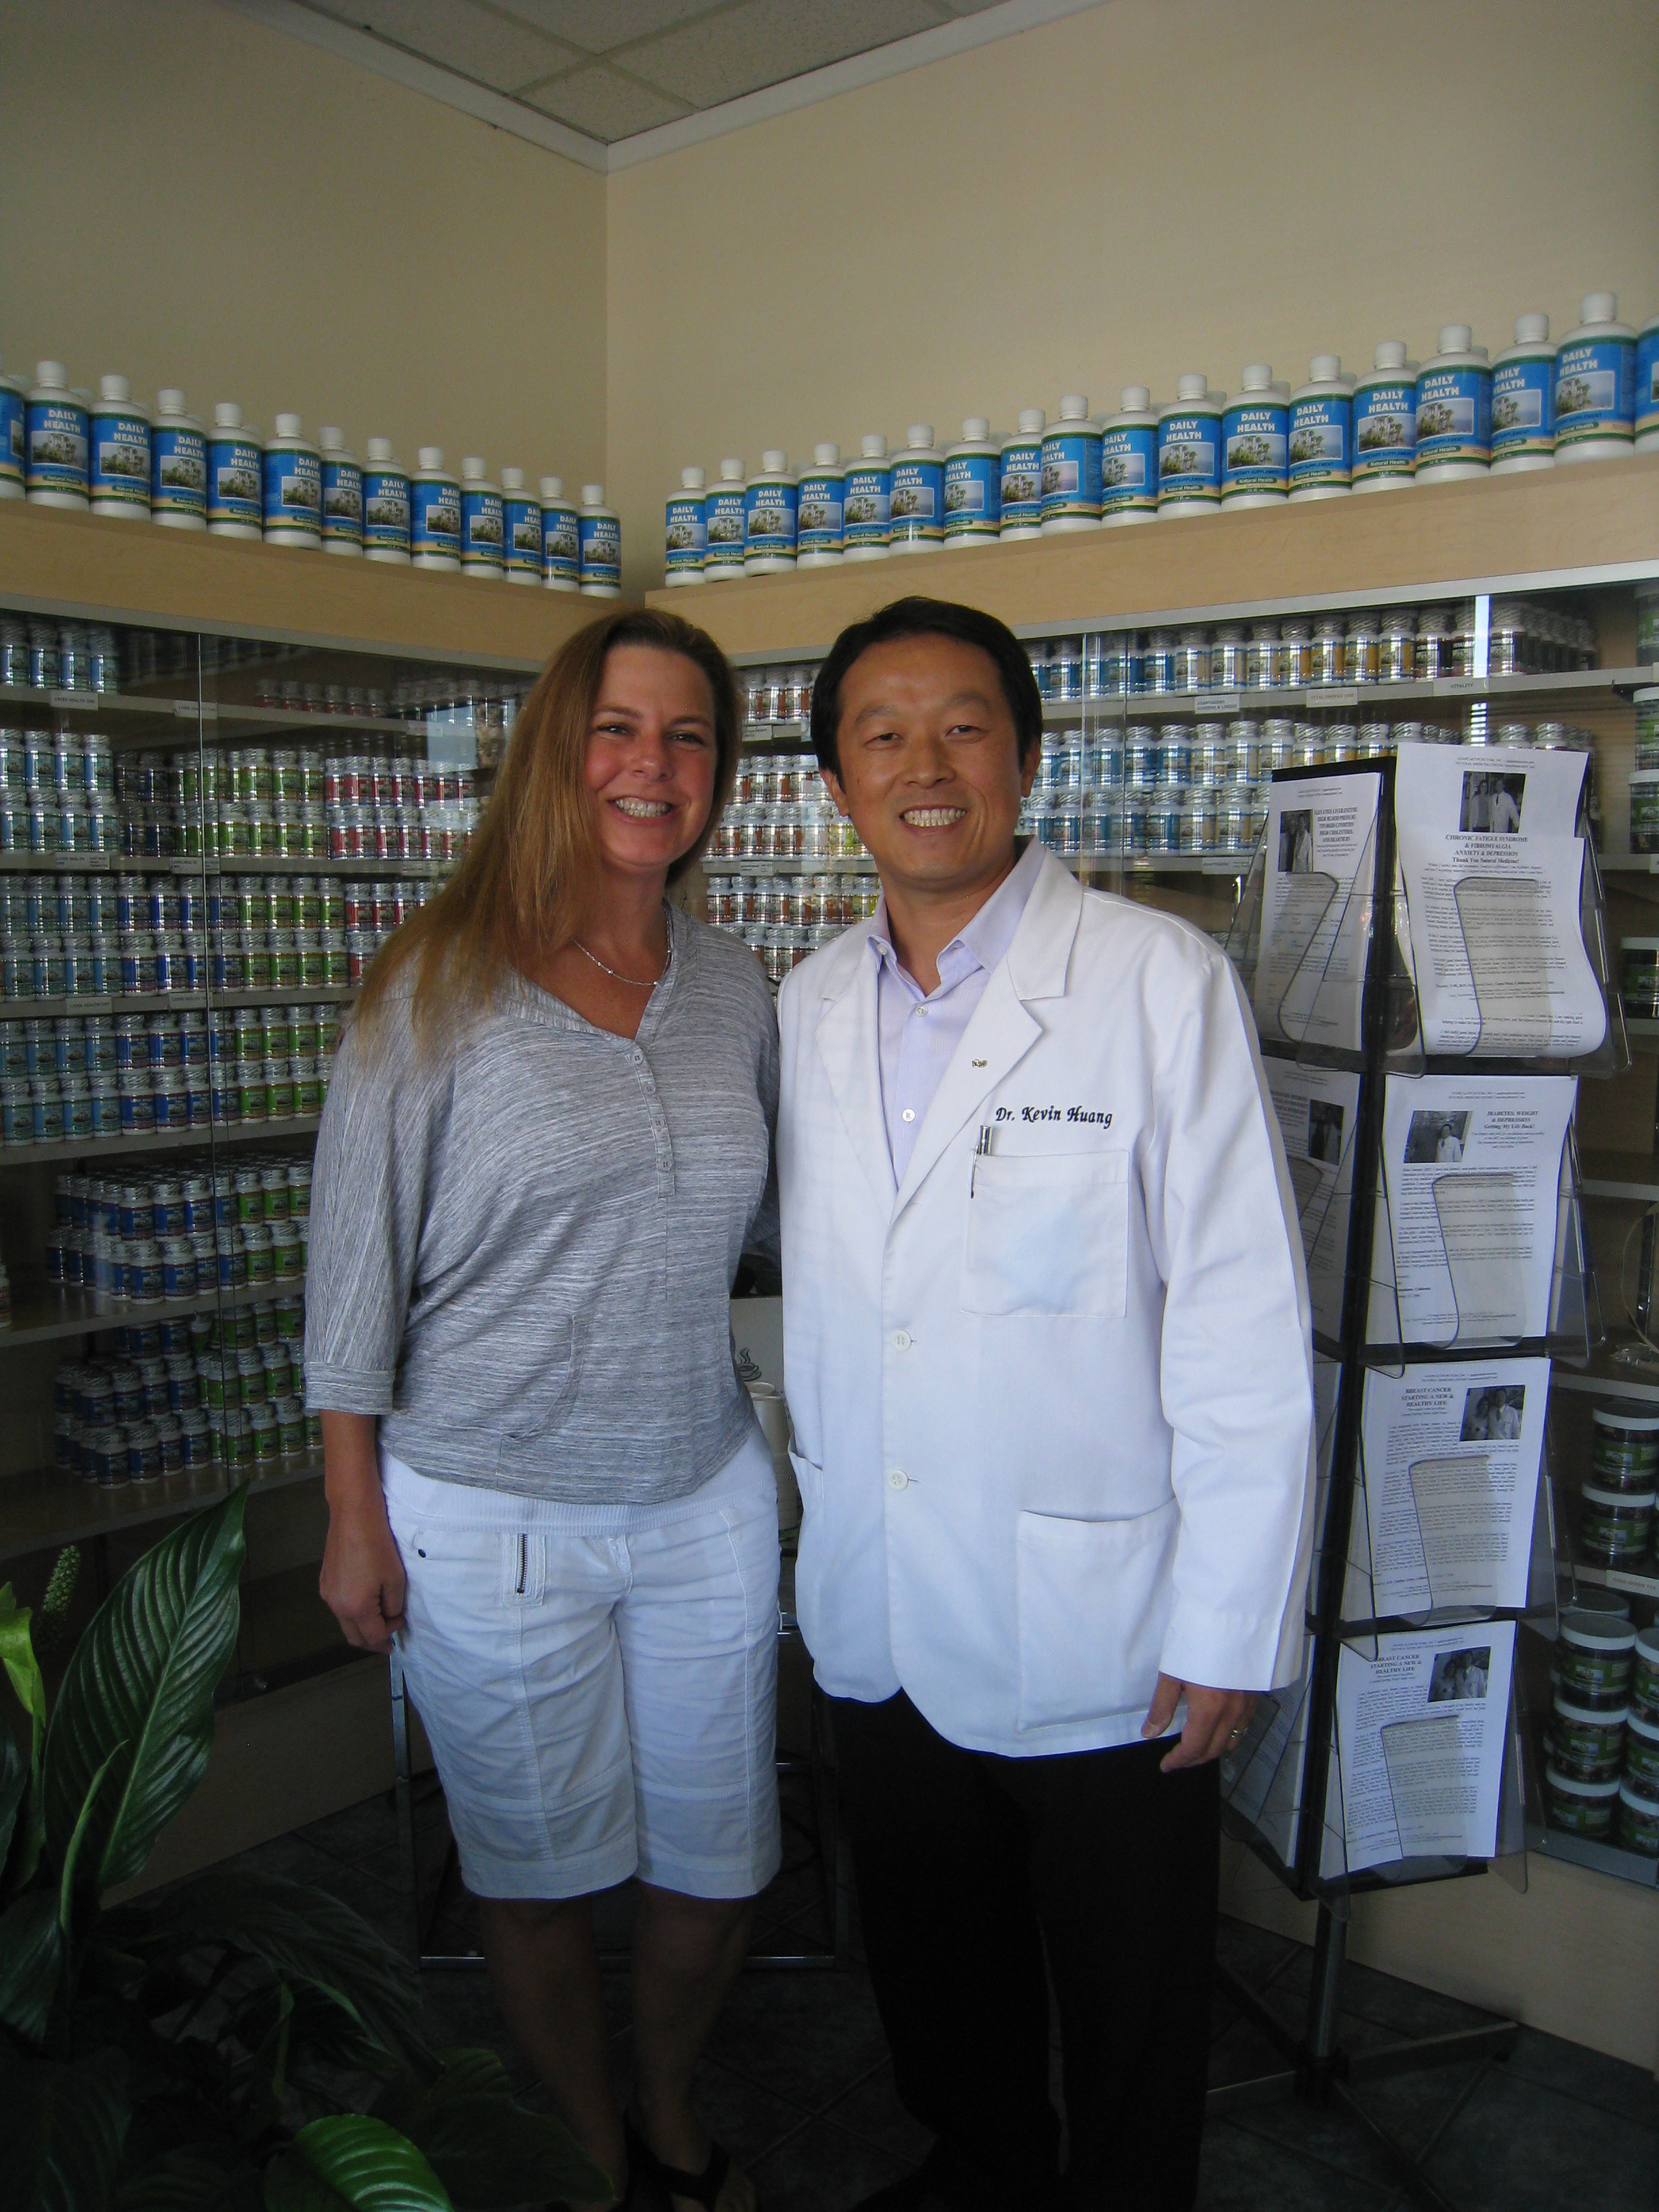 """LUPUS PSORIATIC ARTHRITIS SEVERE PAIN  Heaven Sent  """"I have been blessed. Dr. Huang gave me hope and I've been given a second chance. Things are back to how they should be. I'm heading in the right direction. Now I want to socialize again. This place was heaven sent - best 20 minutes of my day."""""""